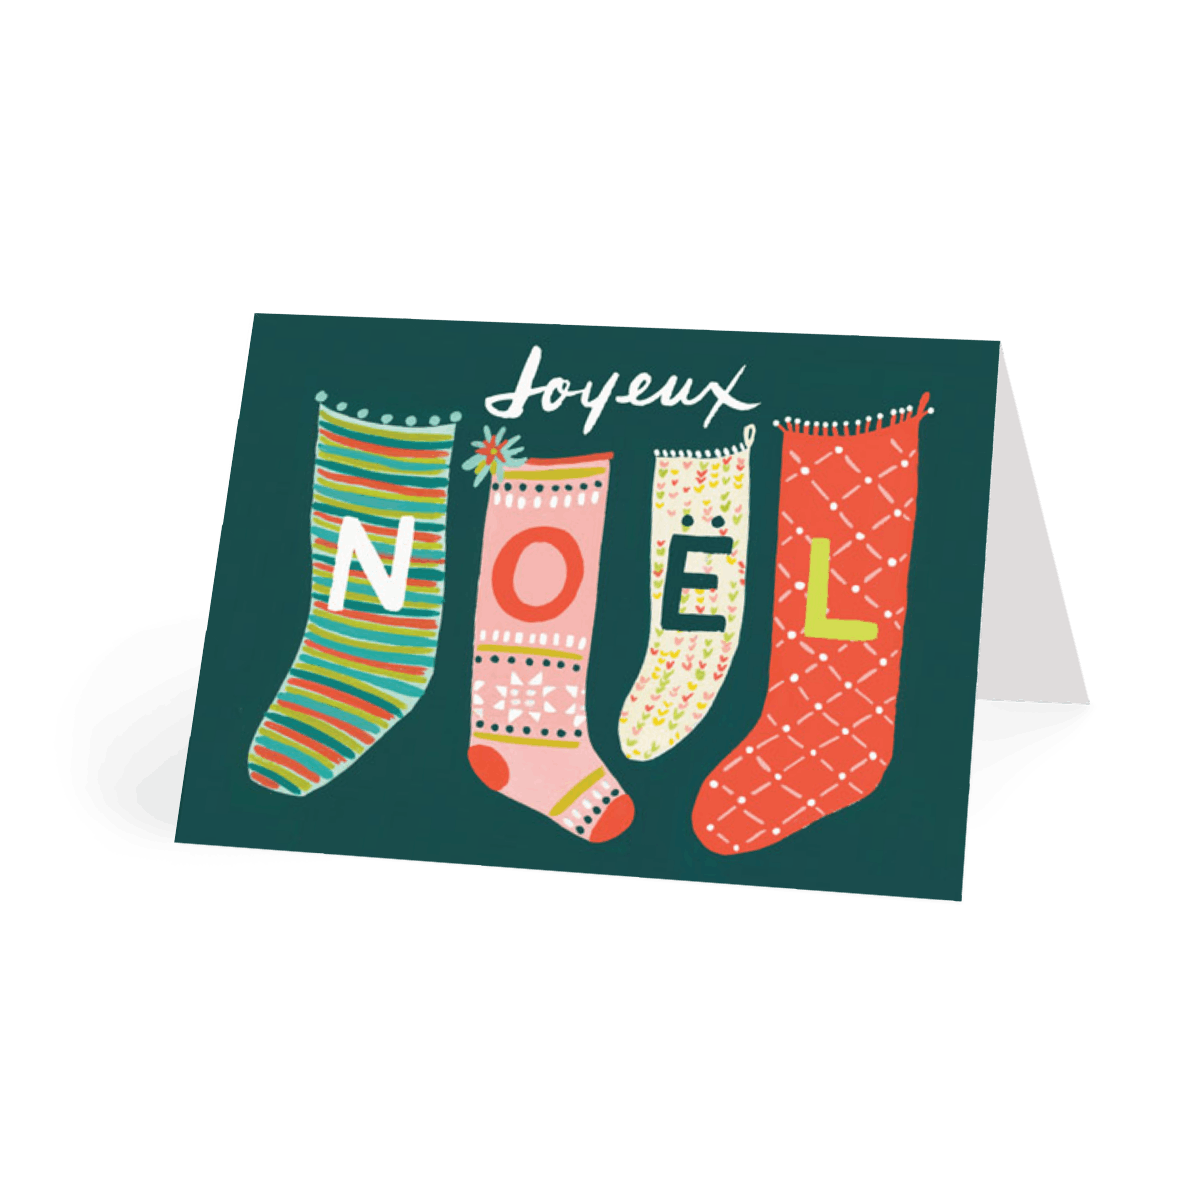 Https%3a%2f%2fwww.papier.com%2fproduct image%2f8210%2f14%2fchristmas stockings 2034 front 1541432189.png?ixlib=rb 1.1